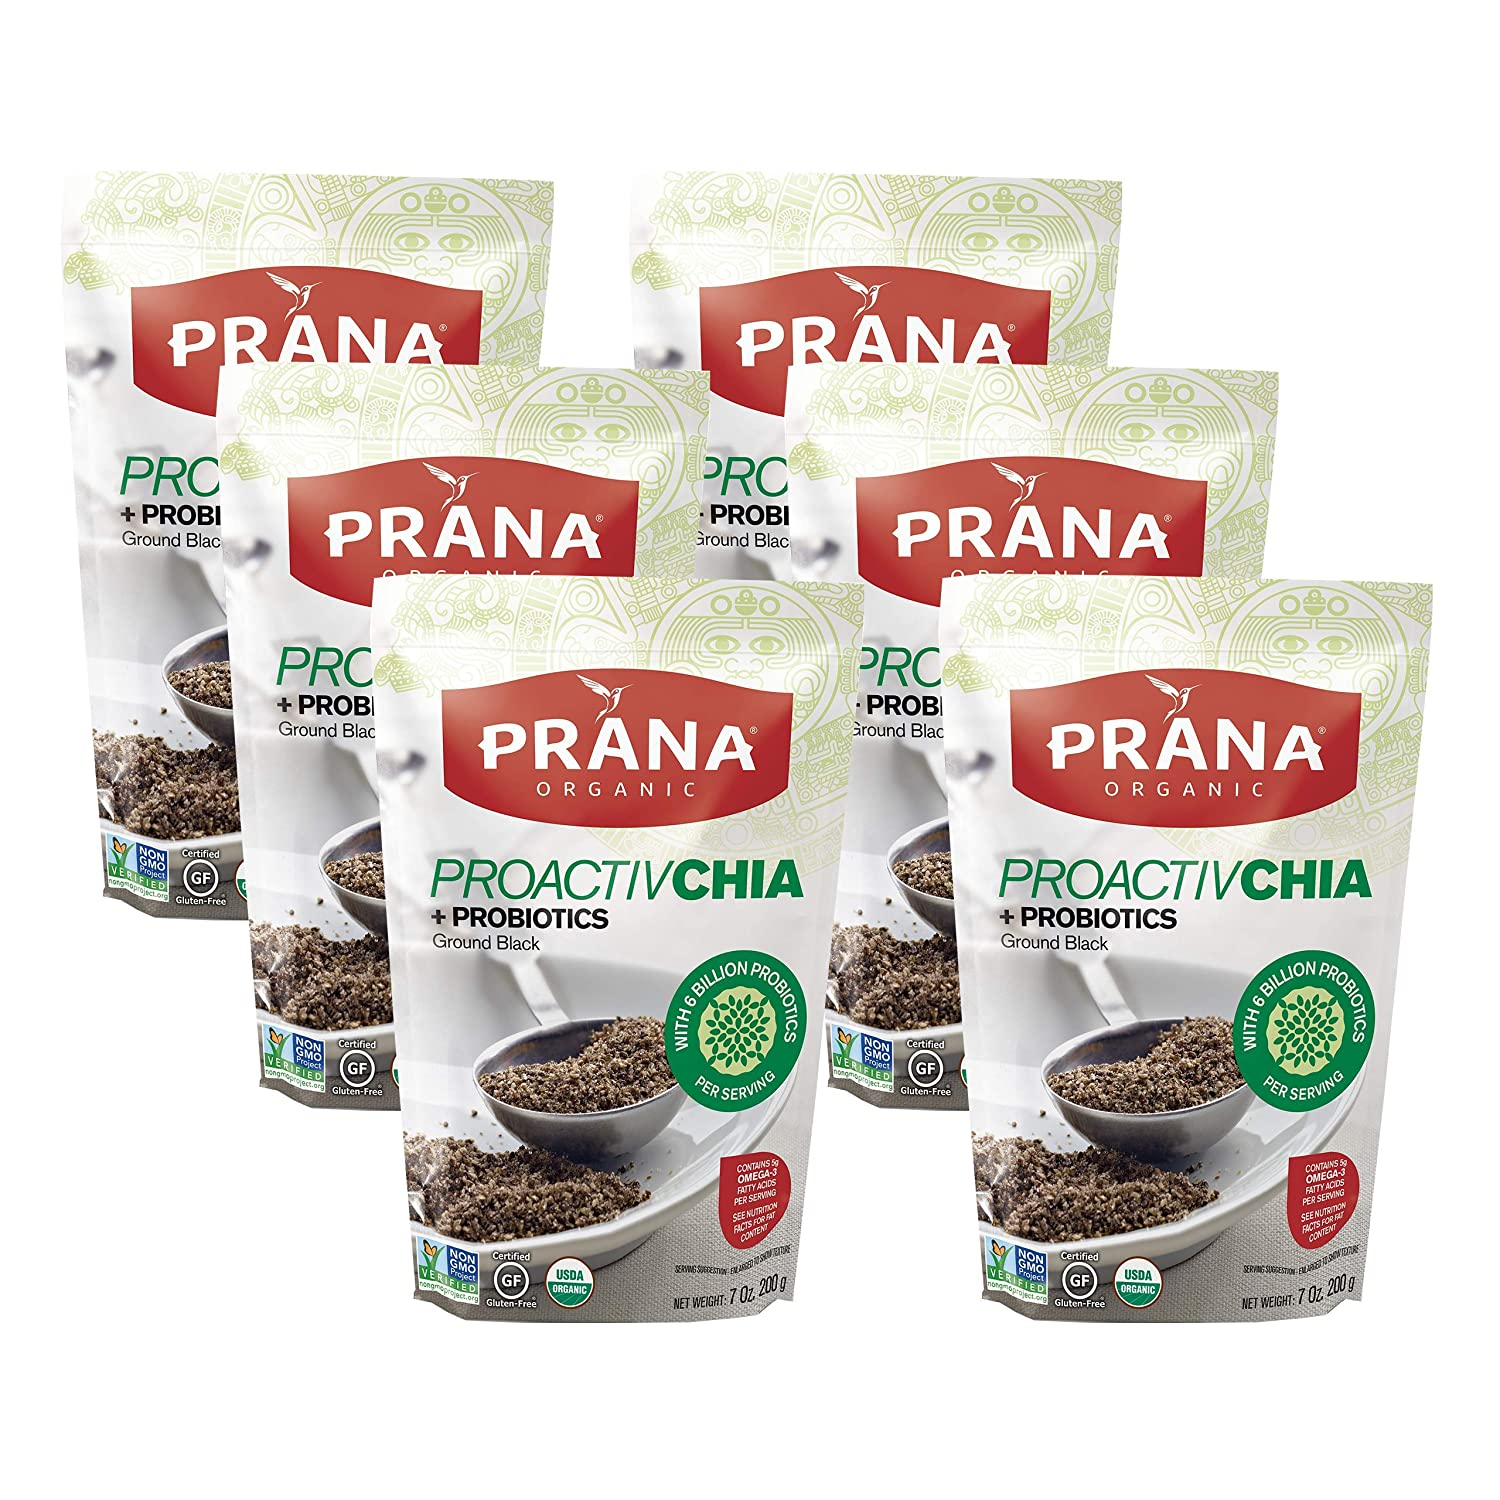 PRANA Proactivchia Organic Ground Black Chia Seeds ...